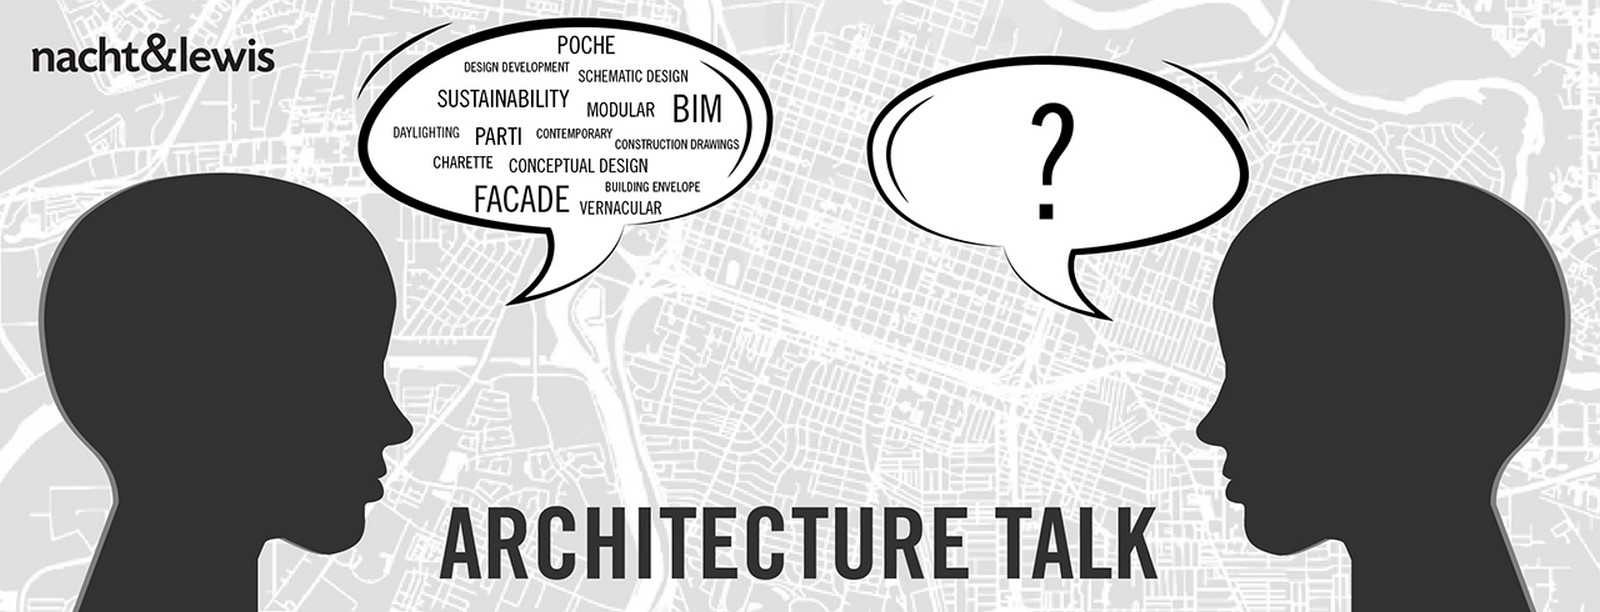 The Architecture Lingo- 20 words/phrases only architects use - Sheet1